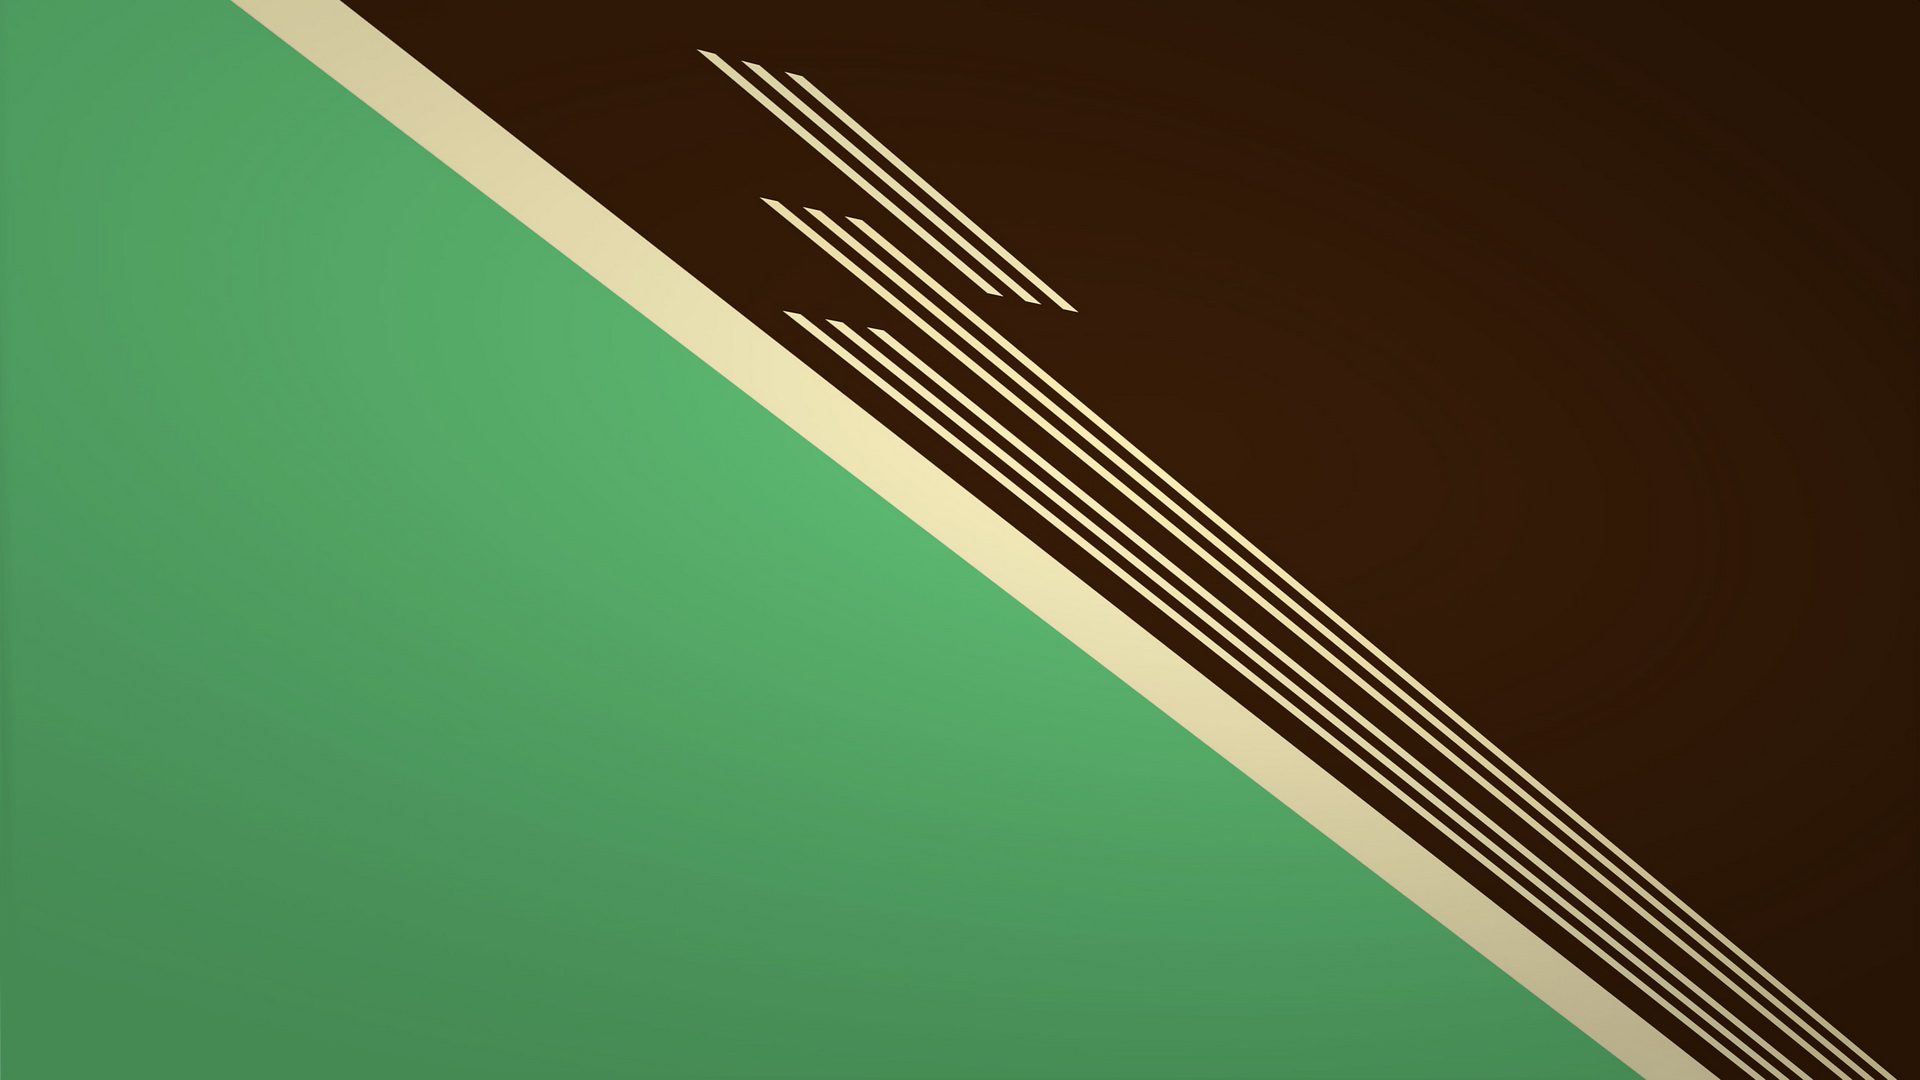 simple retro wallpaper 1920x1080 - photo #7